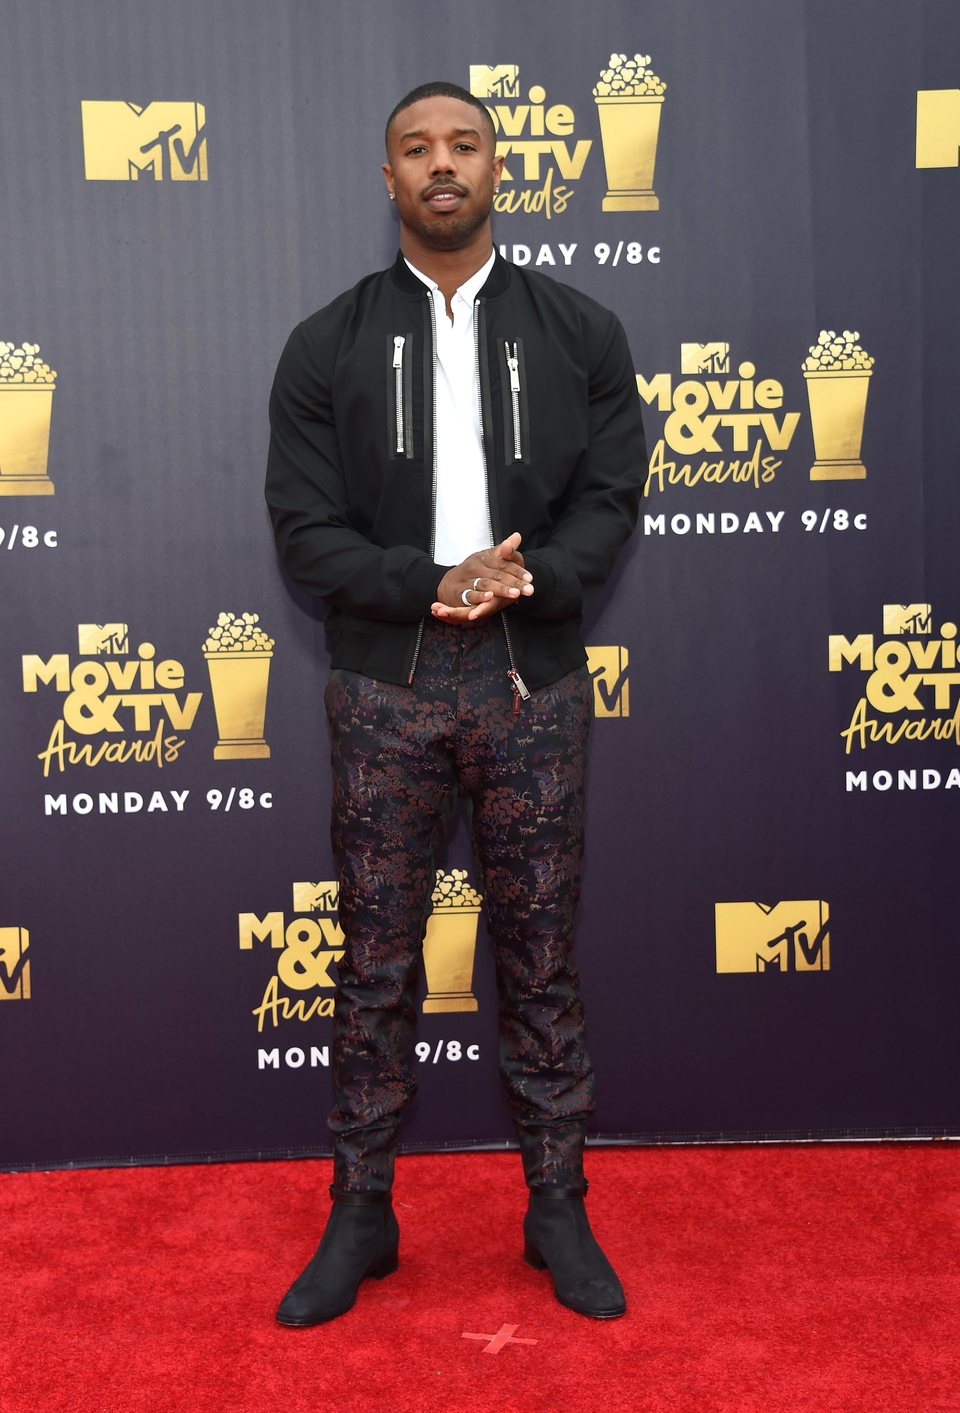 Michael B. Jordan en la alfombra roja de los MTV Movie & TV Awards 2018